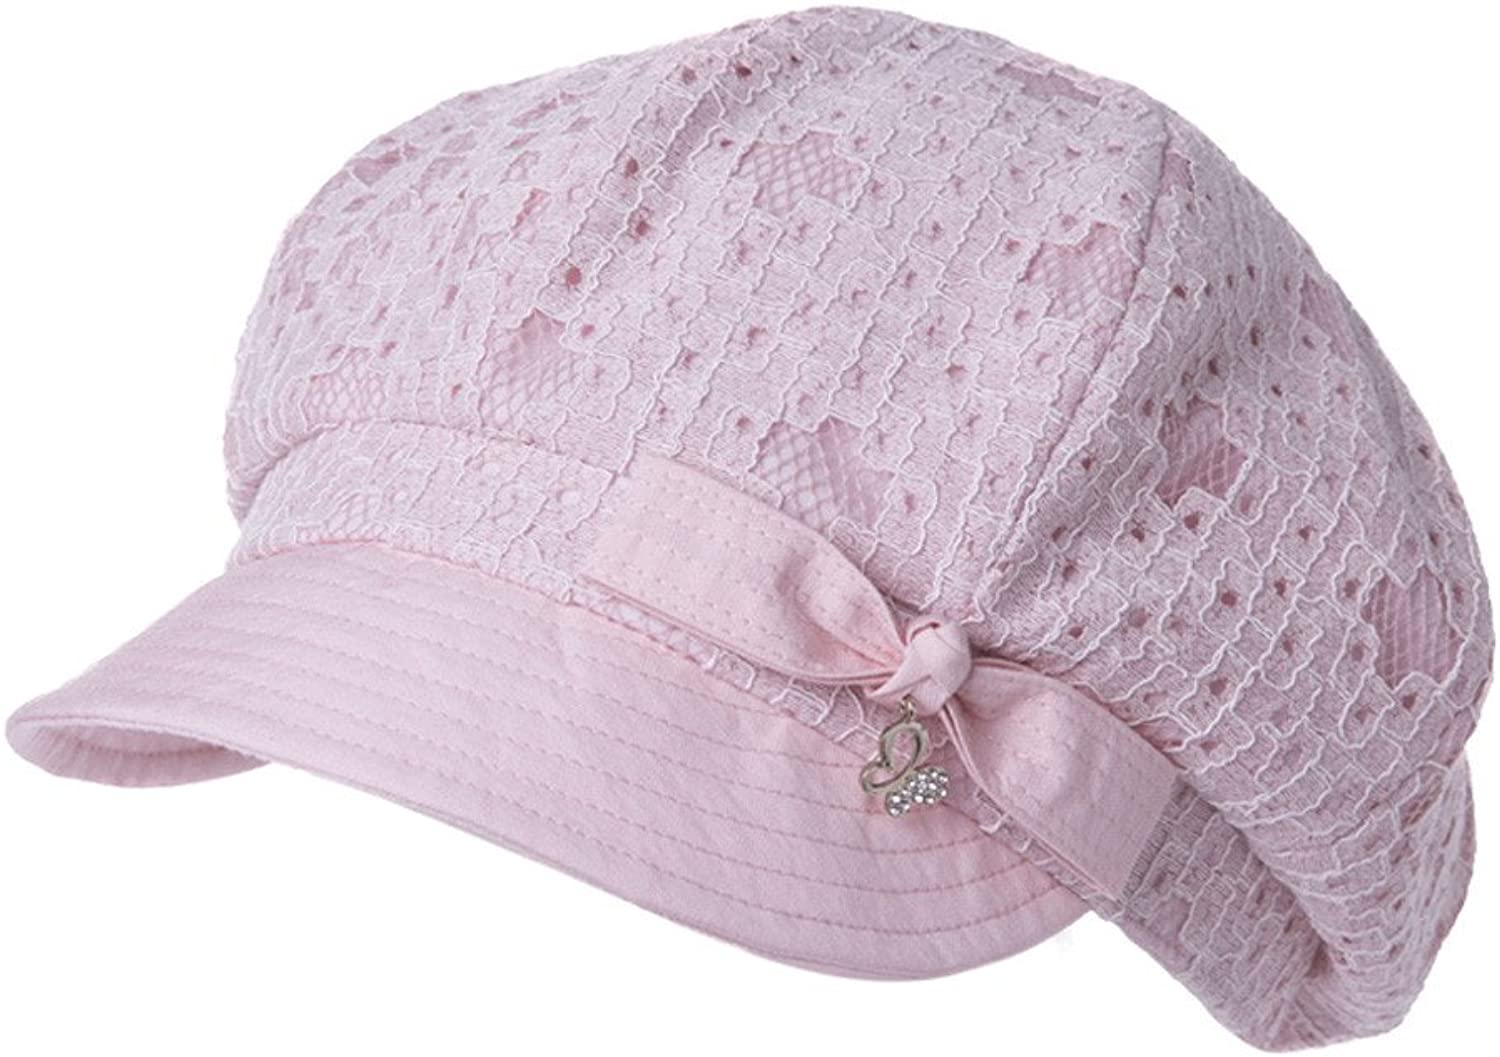 MSZYZ female all-match Lace Cap spring summer leisure hat